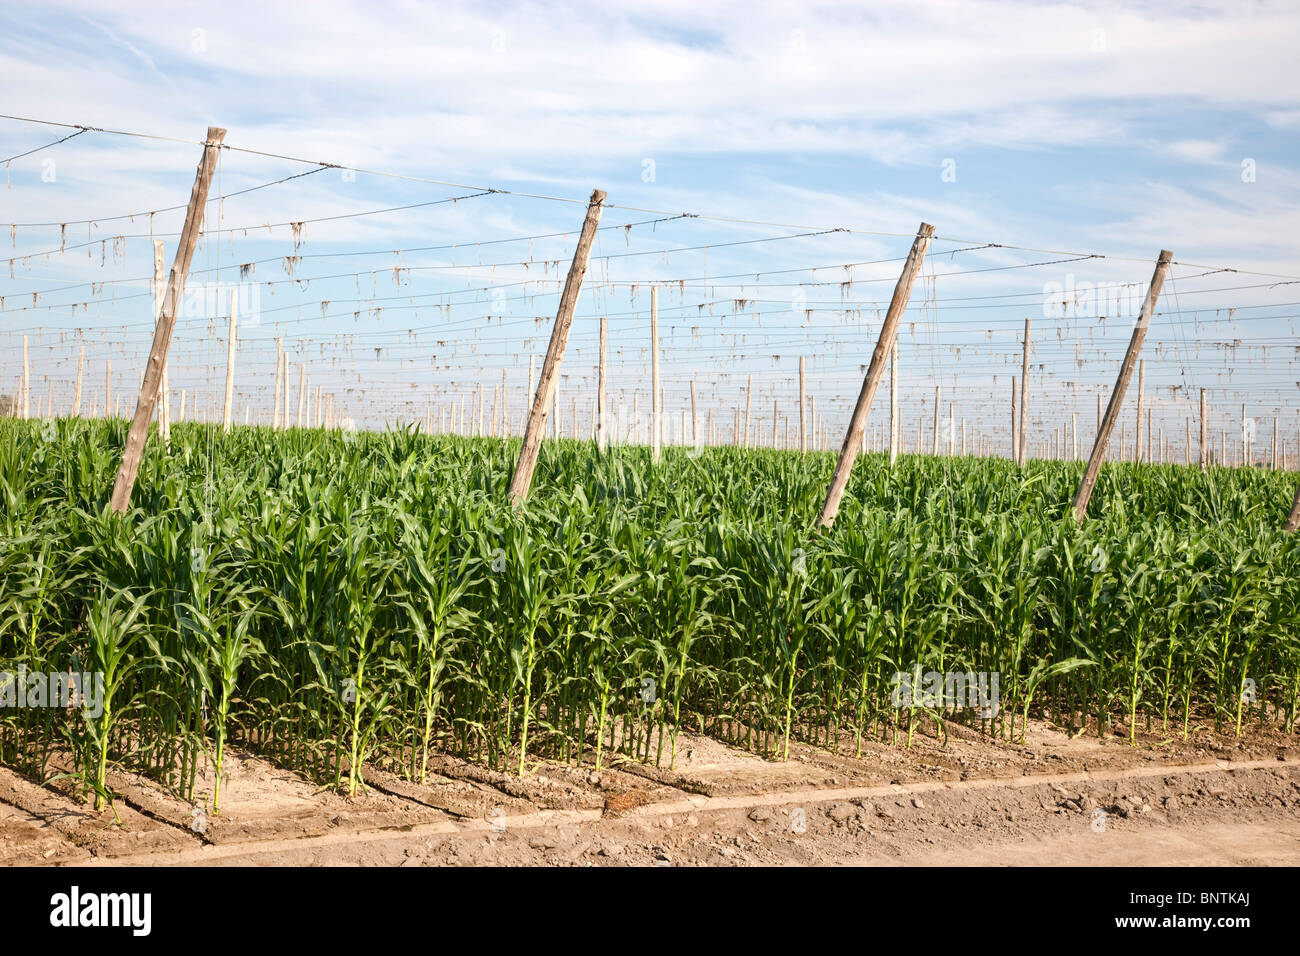 Corn growing, crop rotation - Stock Image